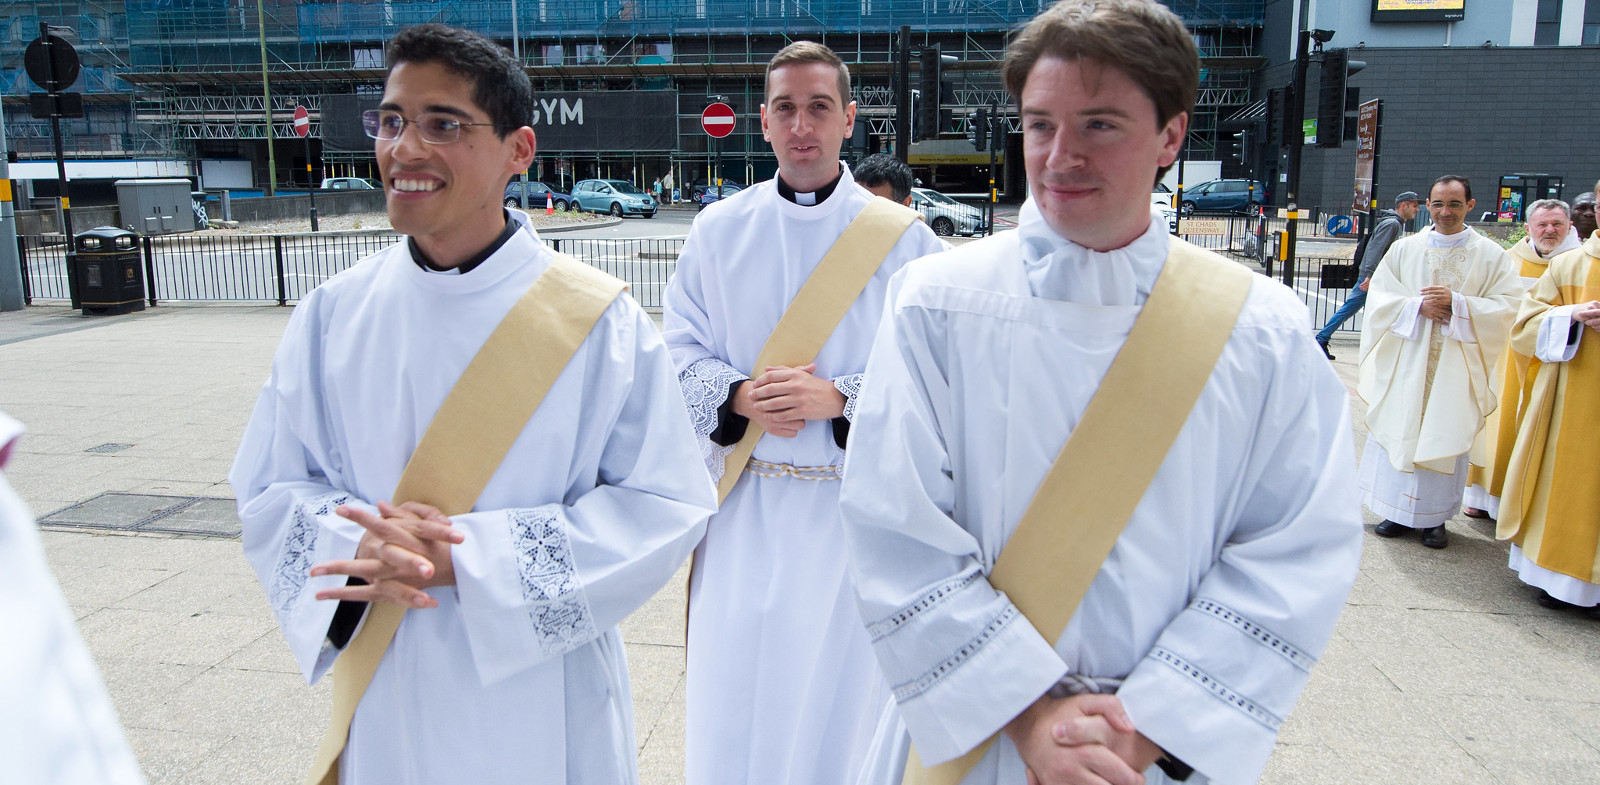 Watch - the ordination of three new priests